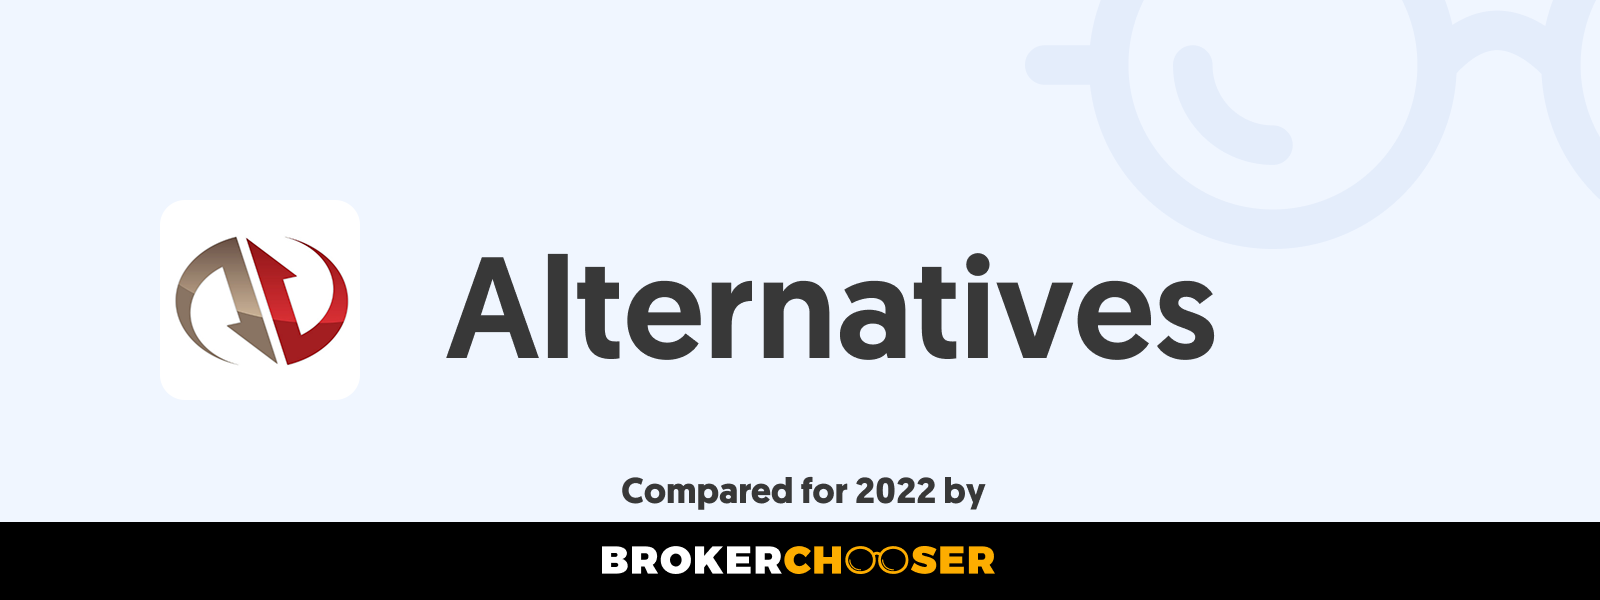 NinjaTrader Alternatives